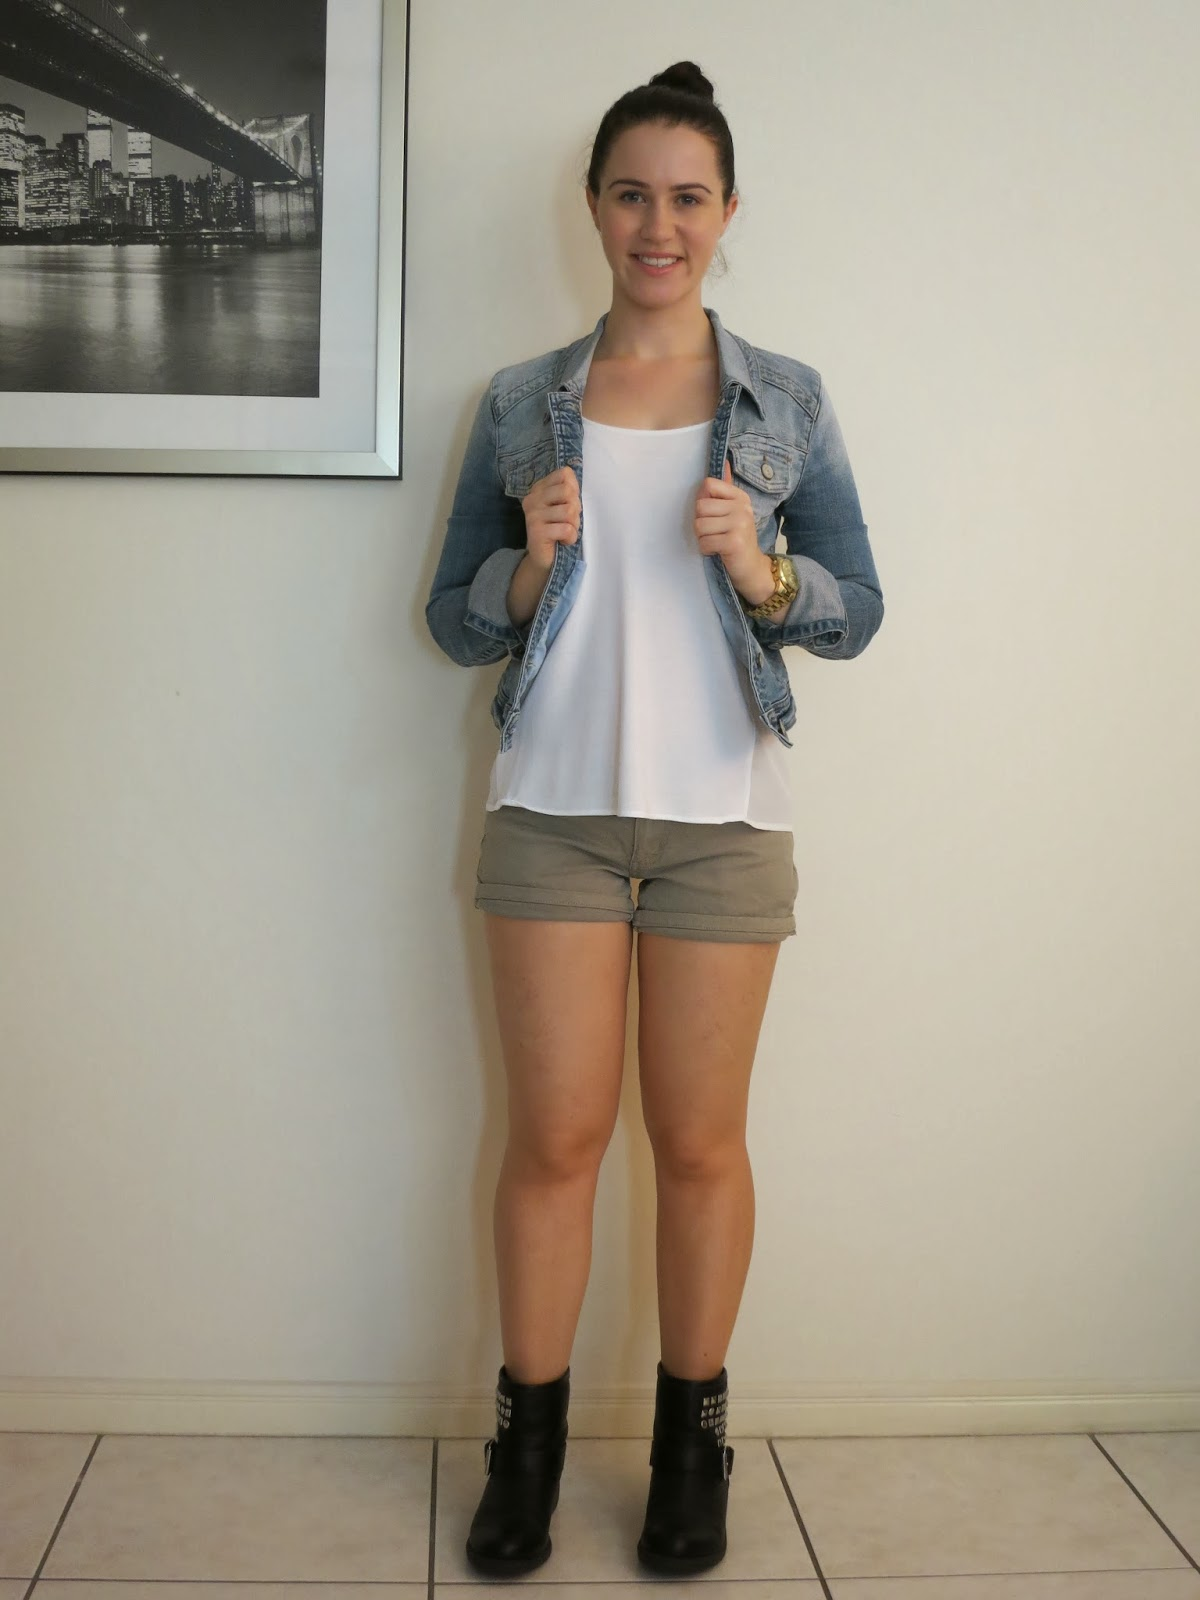 summer outfit, petite outfit, everyday outfit, khaki denim shorts, denim jacket, biker boots, shorts and biker boots, sheer panelled top